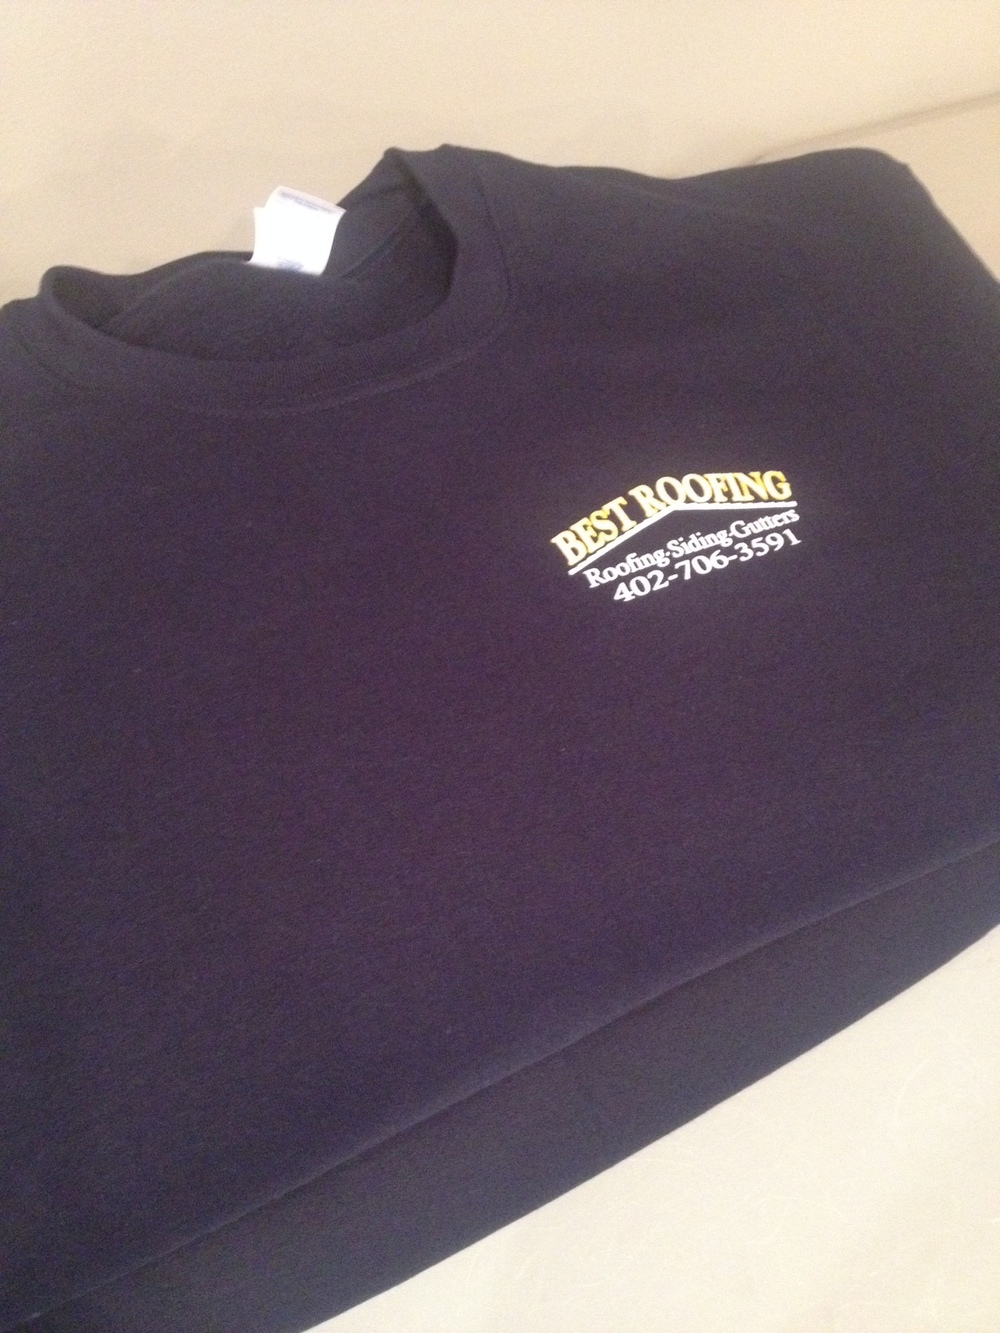 Crewneck sweatshirts for Best Roofing